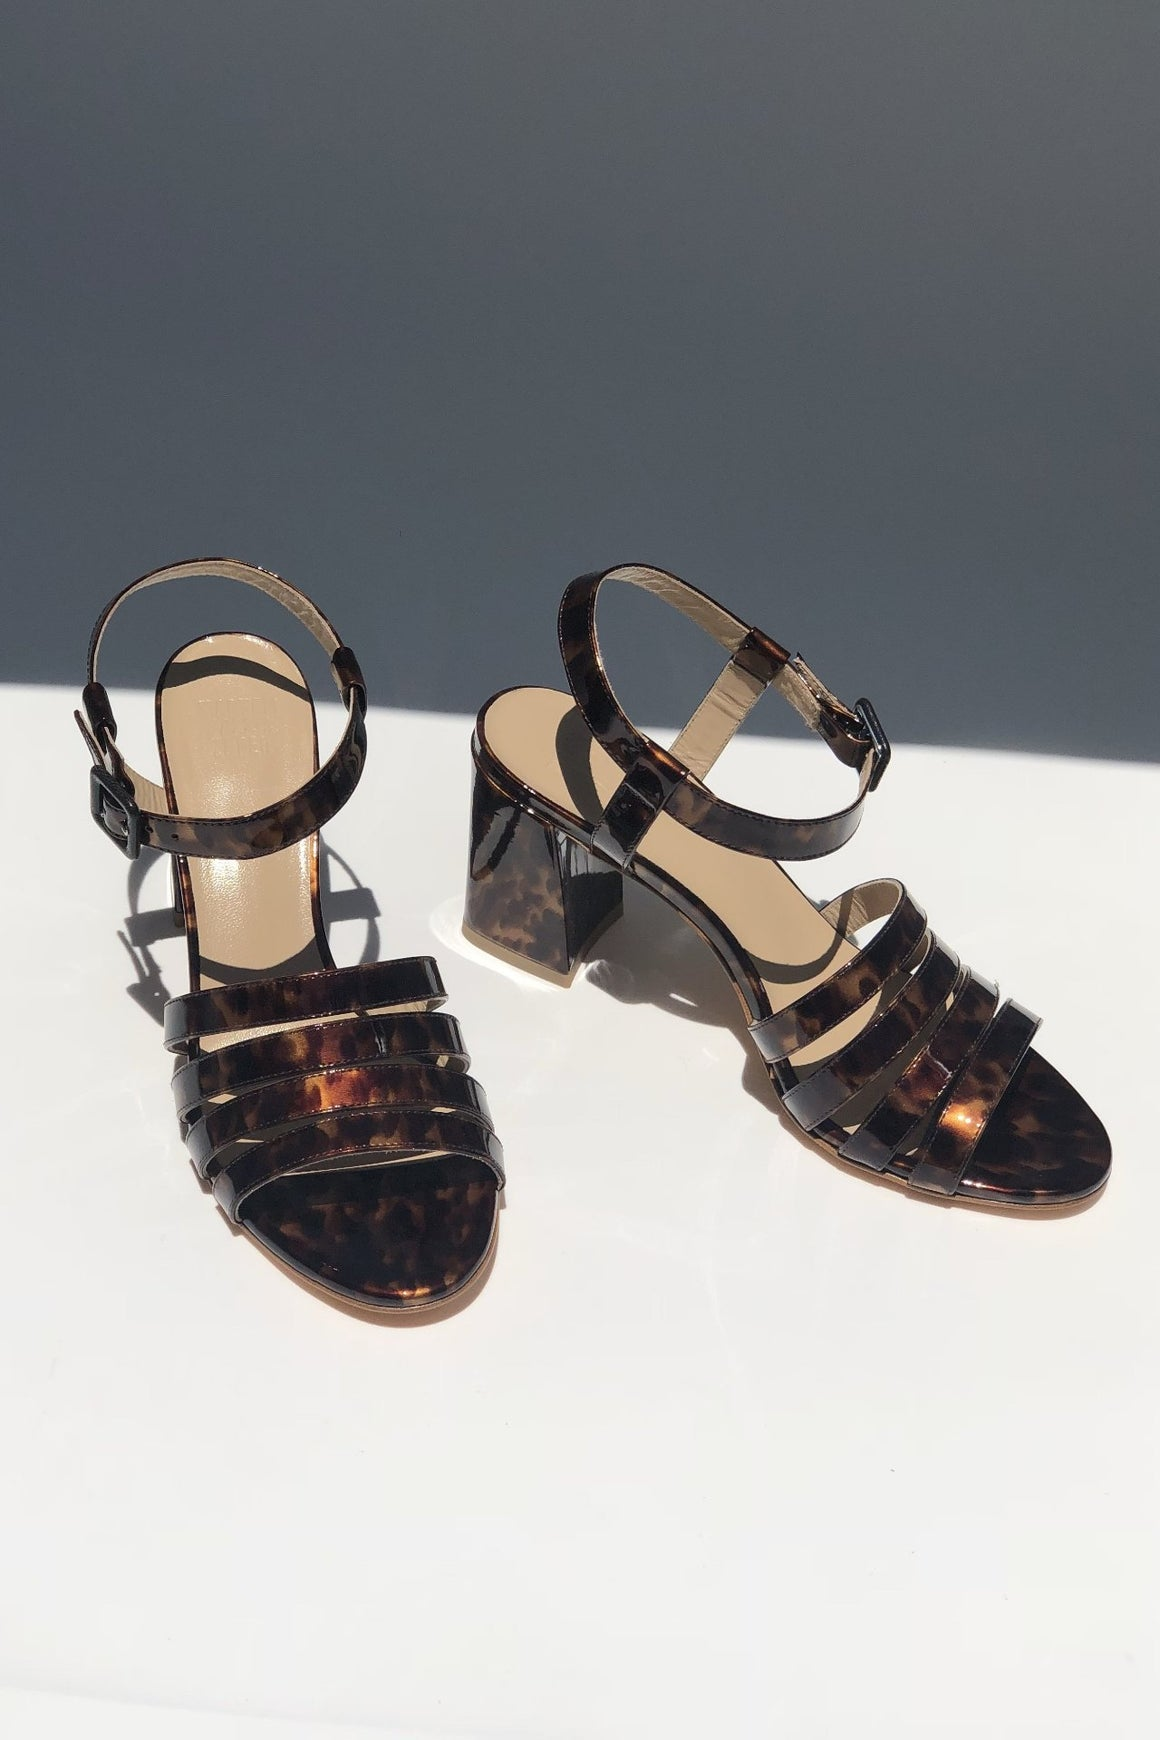 Palma High Sandal - True Tortoise Patent